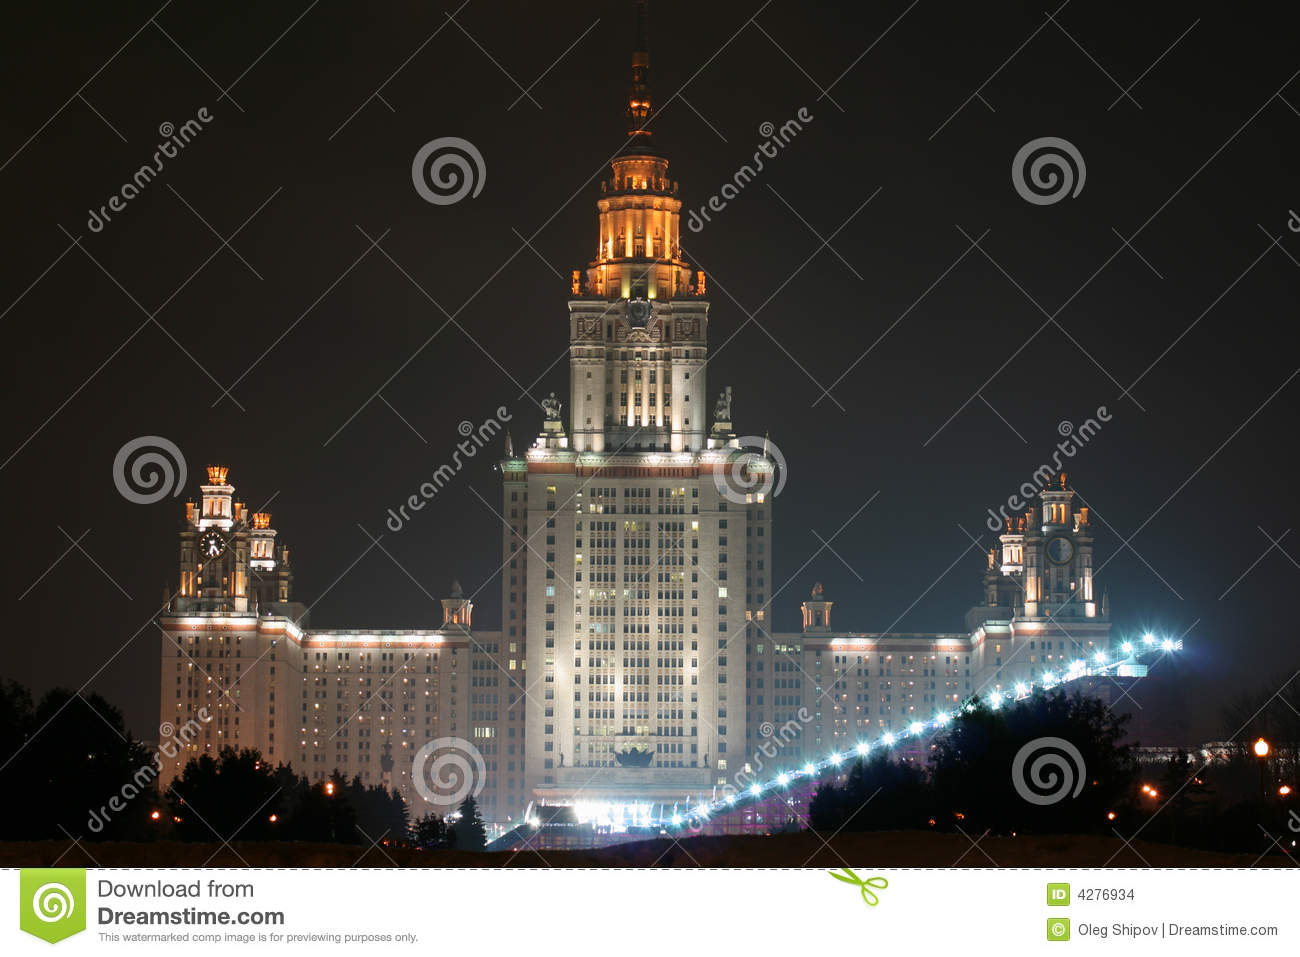 Night view of lomonosov moscow state university, russia. one of seven